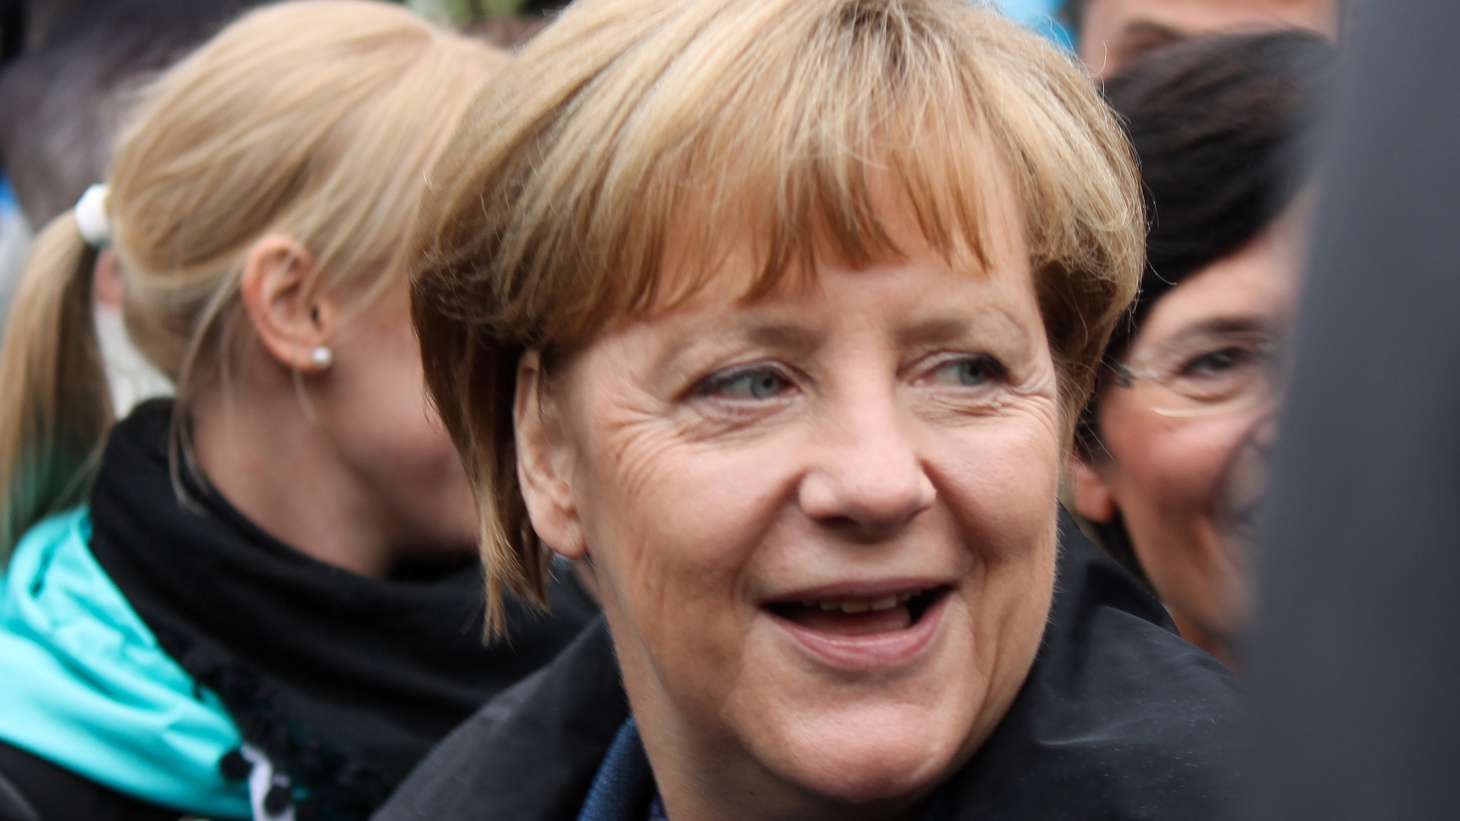 The White House and Germany are at odds over what to do about the crisis in Ukraine. We look at German chancellor Angela Merkel's unique ability to negotiate with Putin, and what it means for the ongoing diplomacy. Then, it's been one year since the Russian government spent $50 billion on the Winter Olympics in Sochi. What's happening there now?